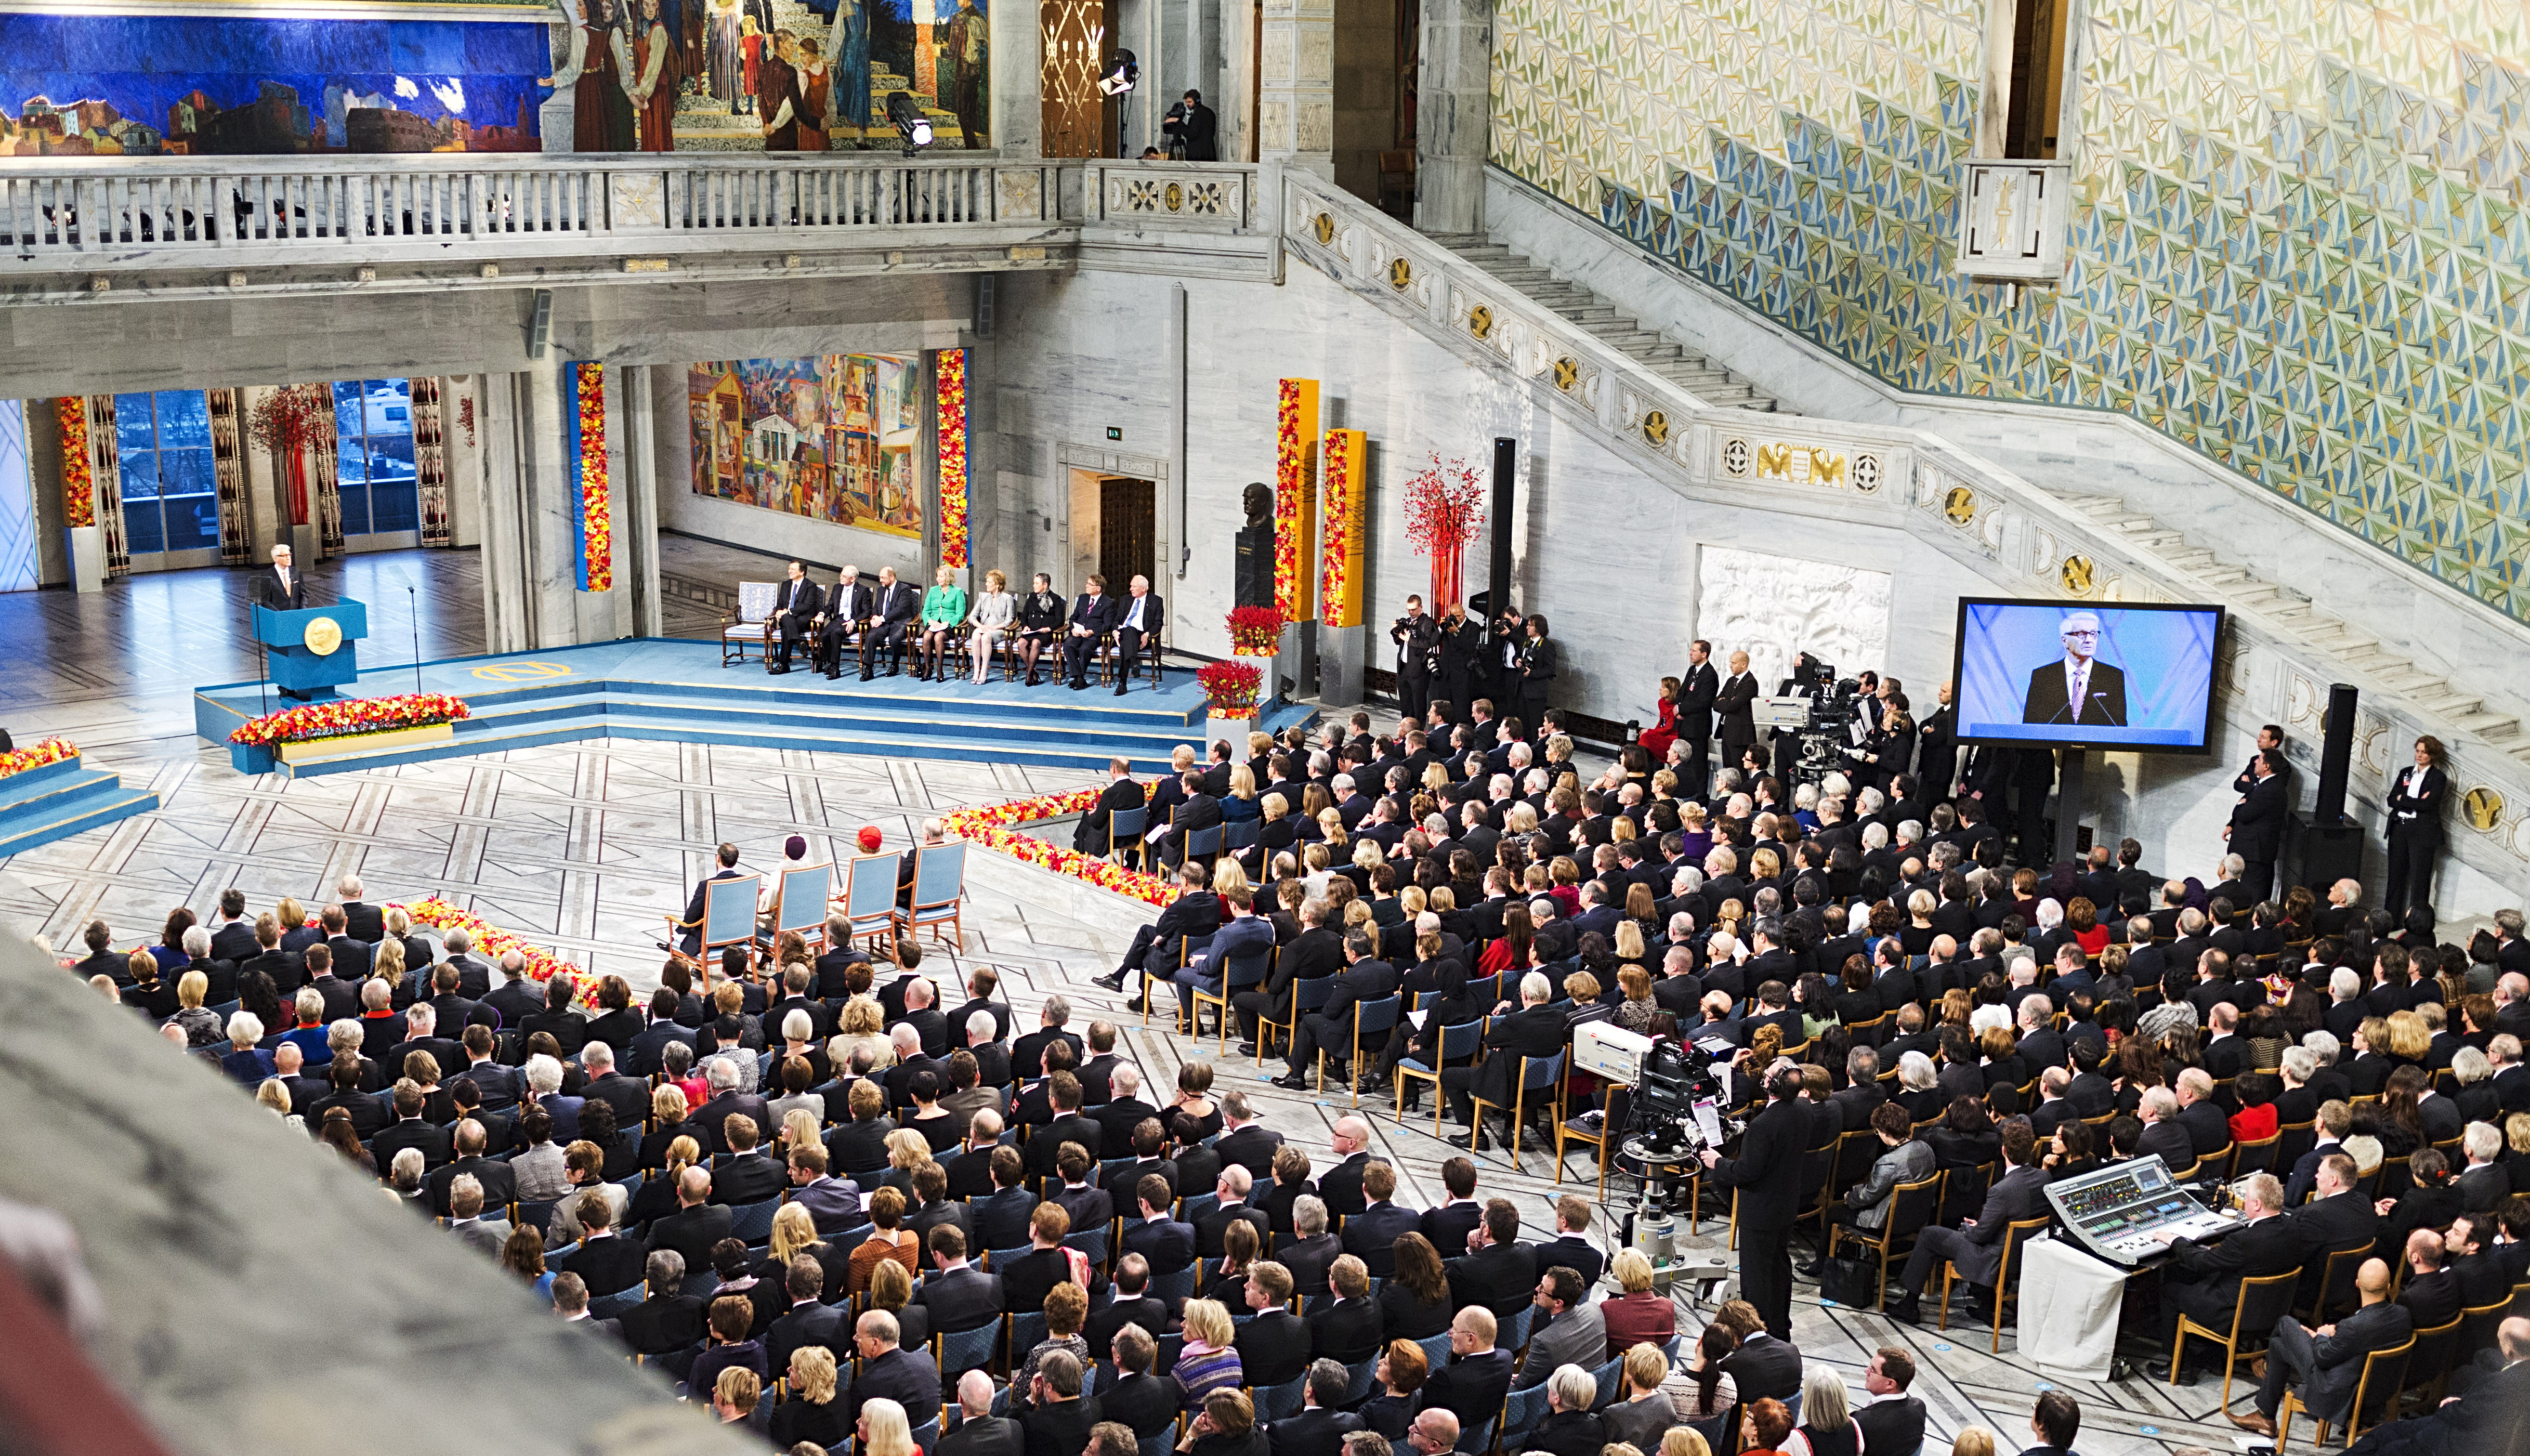 Ceremonial hall of Oslo City Hall. Photo: CC BY-ND 2.0, Utenriksdepartementet UD